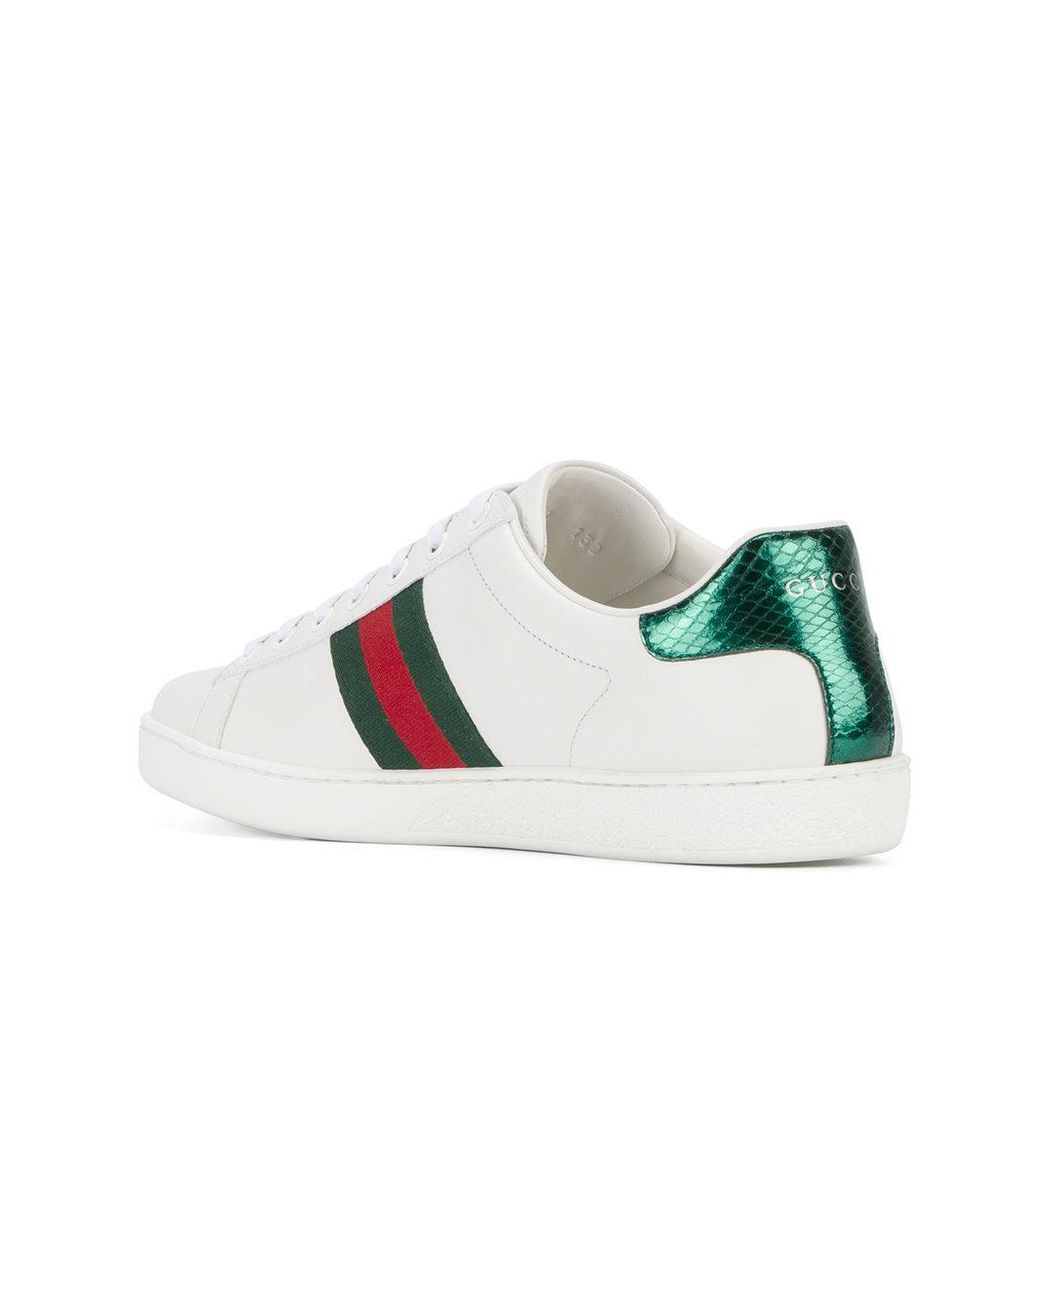 154ead0bb5243 Lyst - Gucci Heart Dagger Ace Sneakers in White - Save 30%